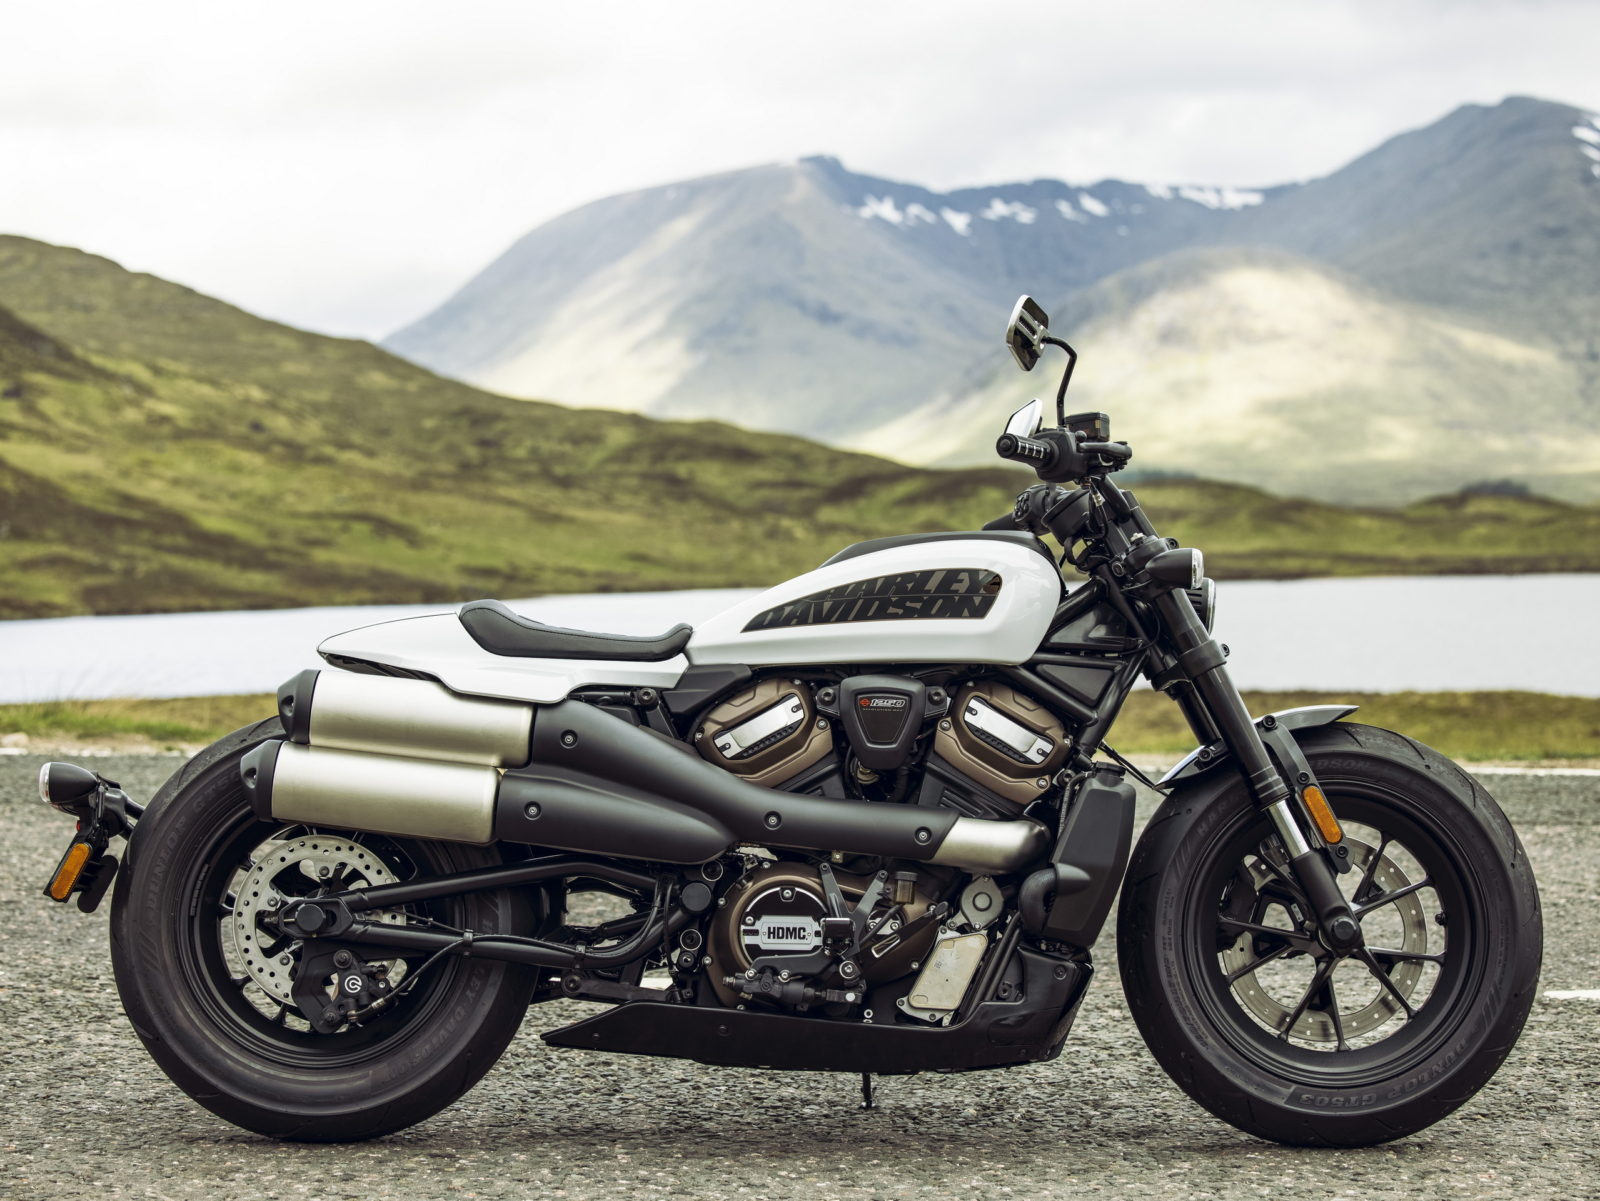 2021-harley-davidson-sportster-s-boldly-goes-beyond-all-expectations